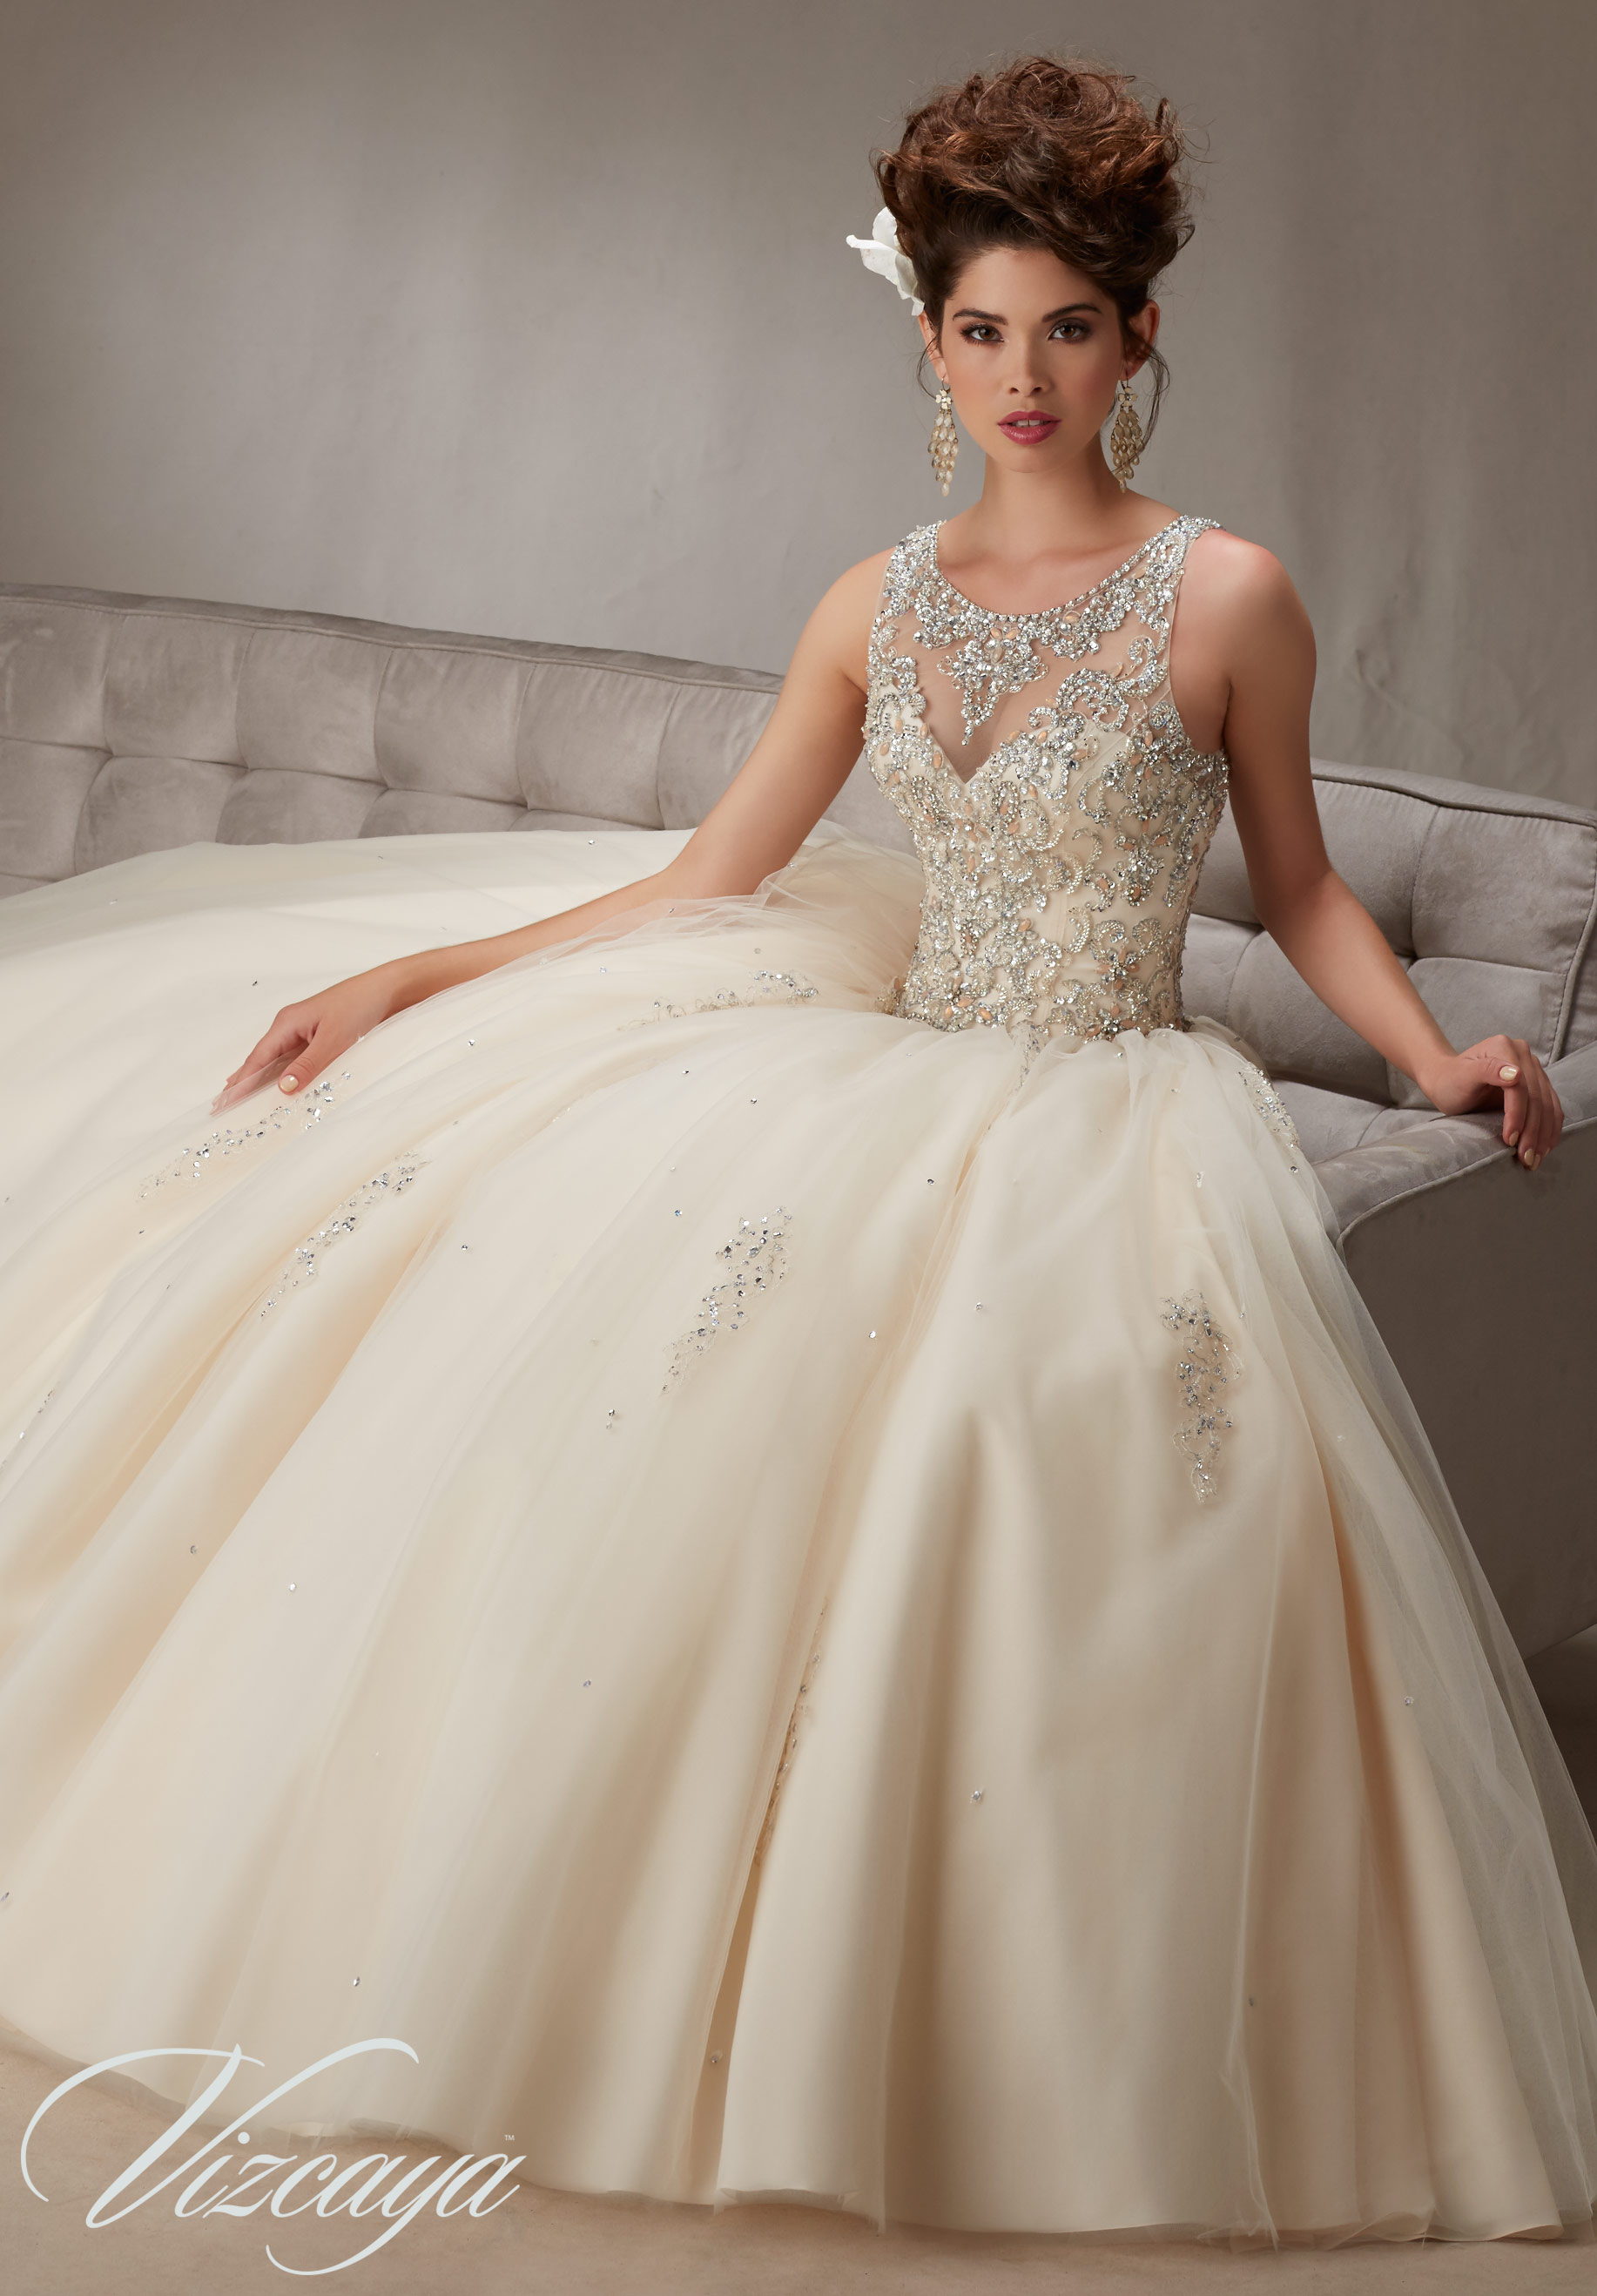 Outstanding Ball Gowns Mobile Al Pictures   Ball Gown Wedding .